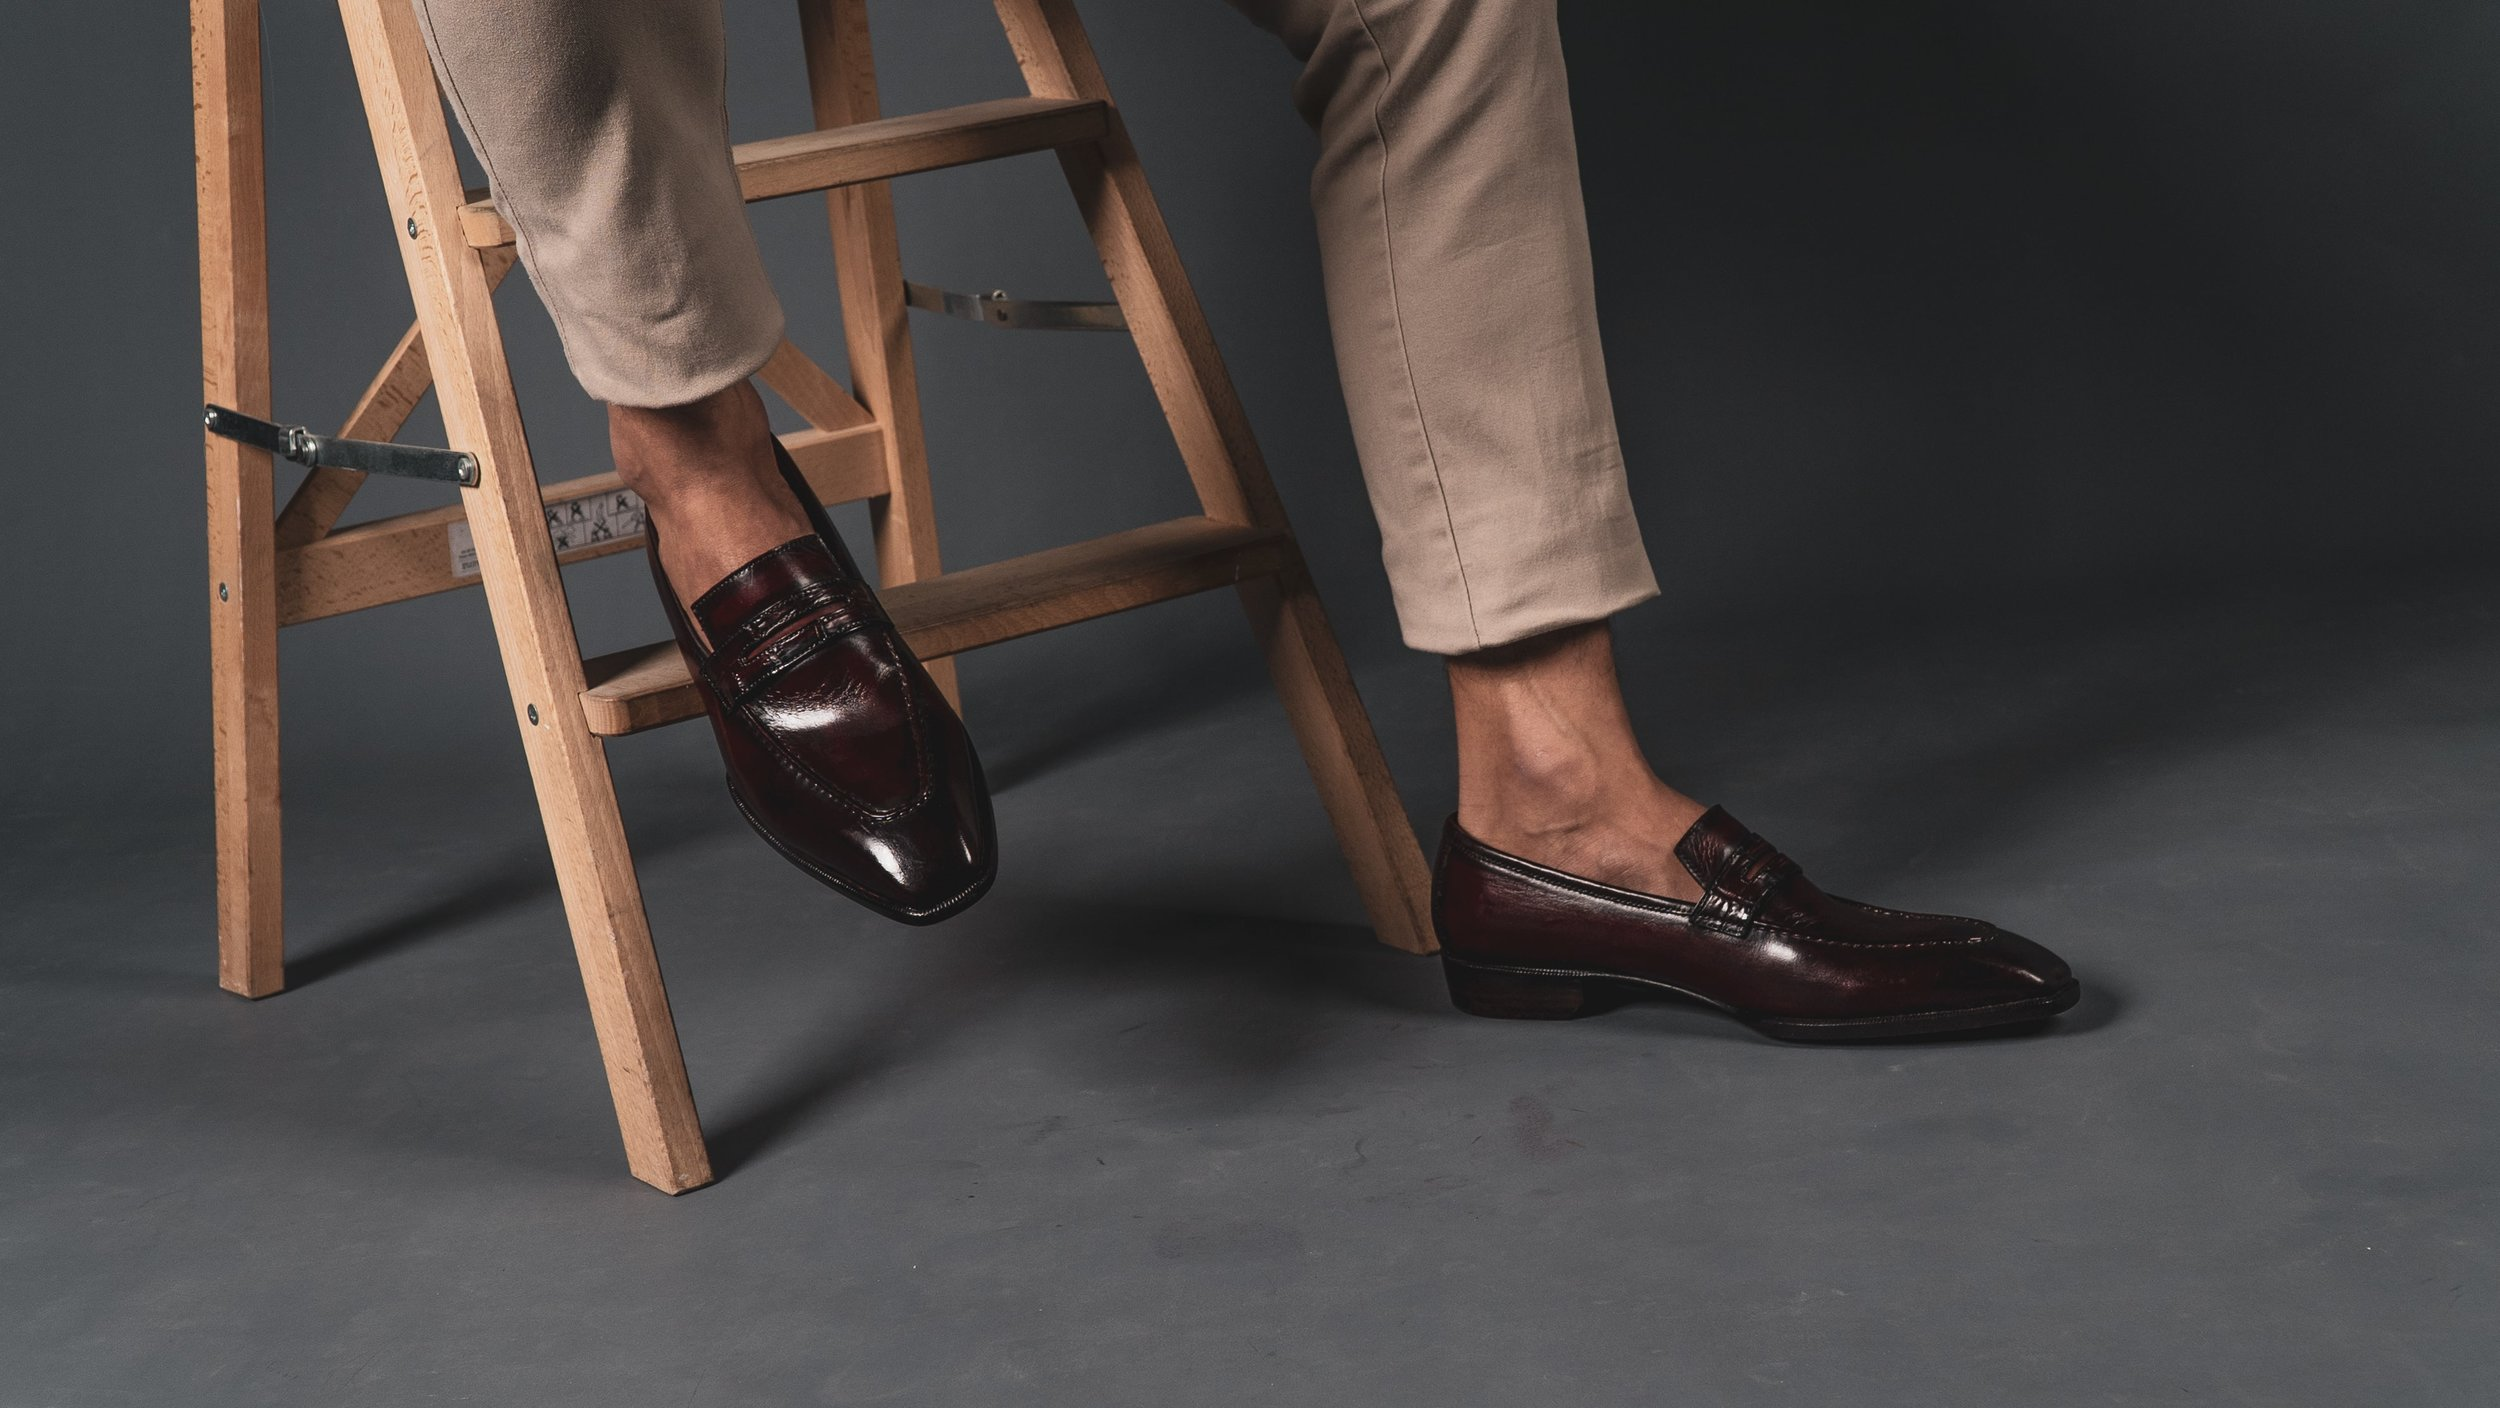 UNO Mahogany loafers with khakis/chinos